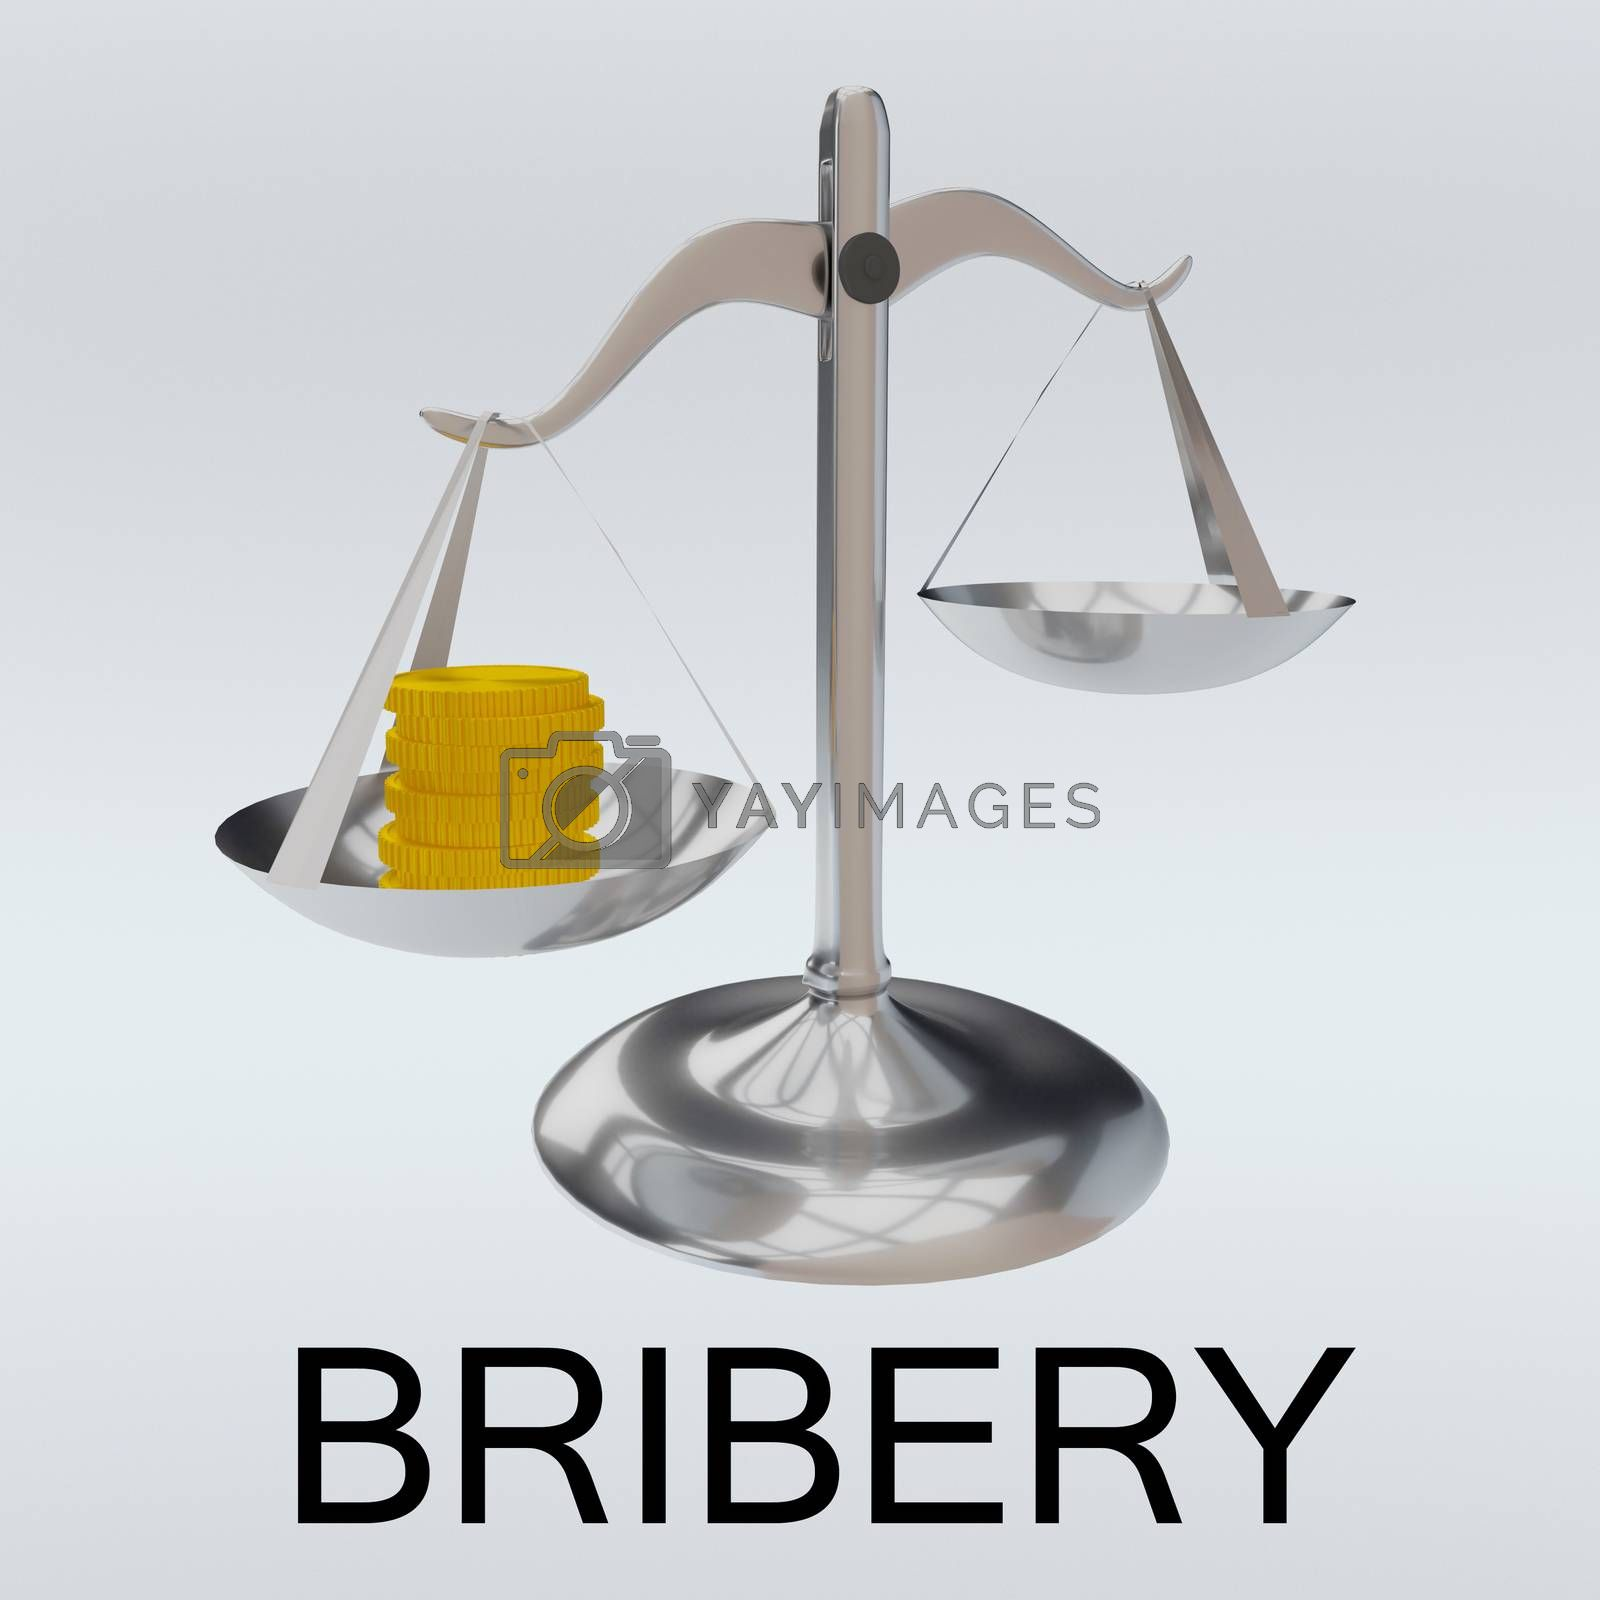 3D illustration of scales loaded with golden coins on one hand, and the word BRIBERY at the bottom, isolated over pale blue background.